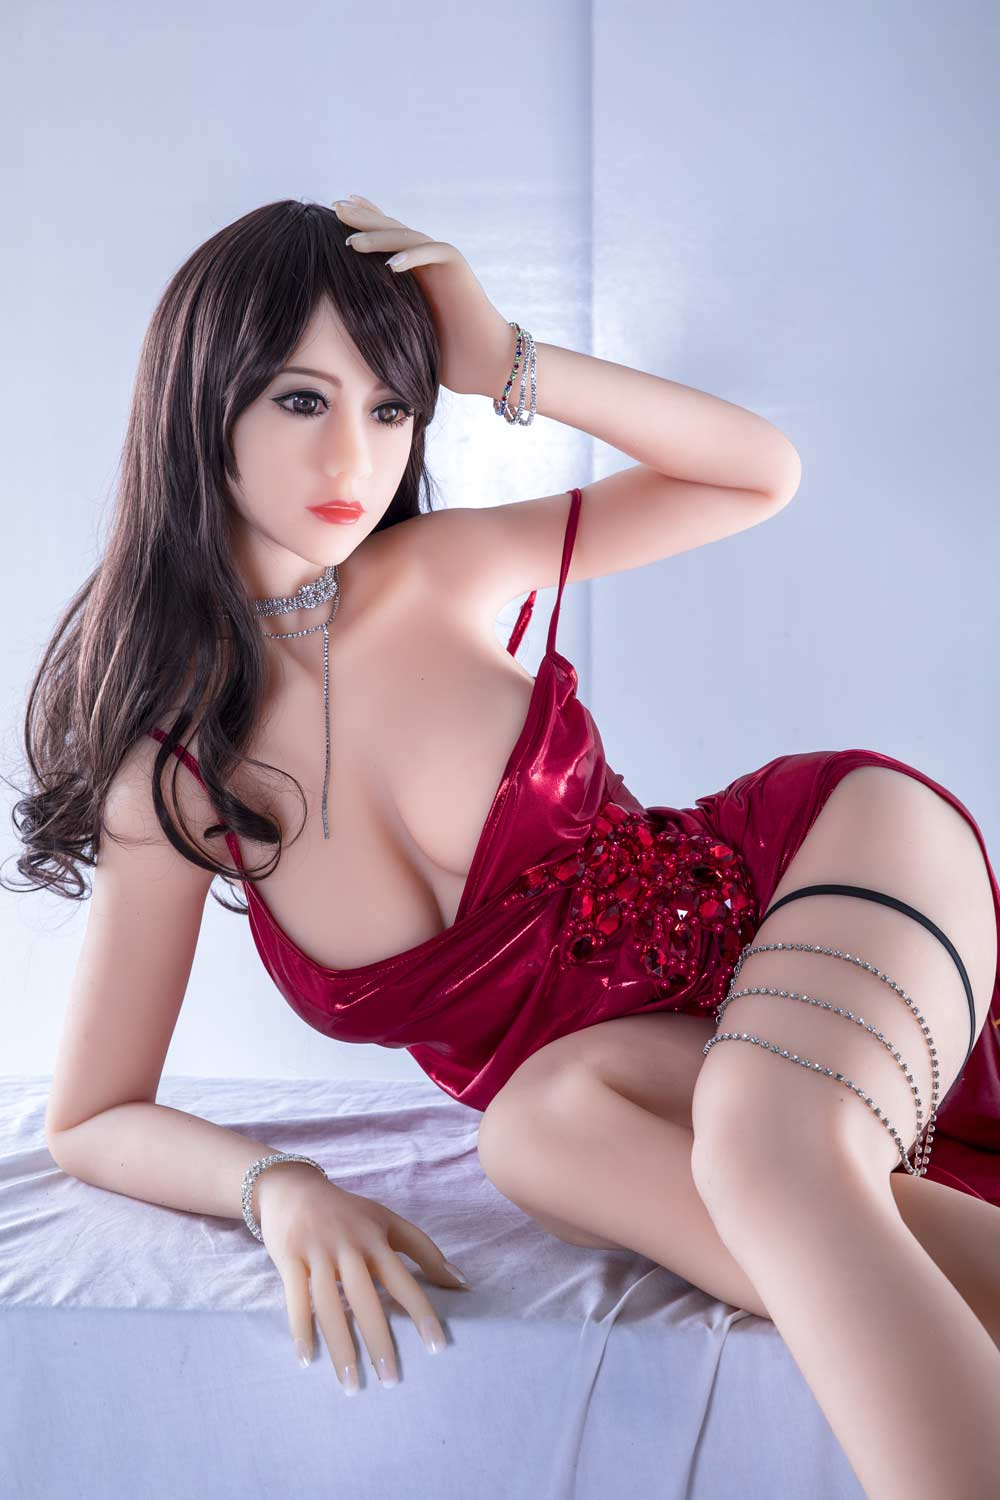 Sex doll sitting on the table and touching hair